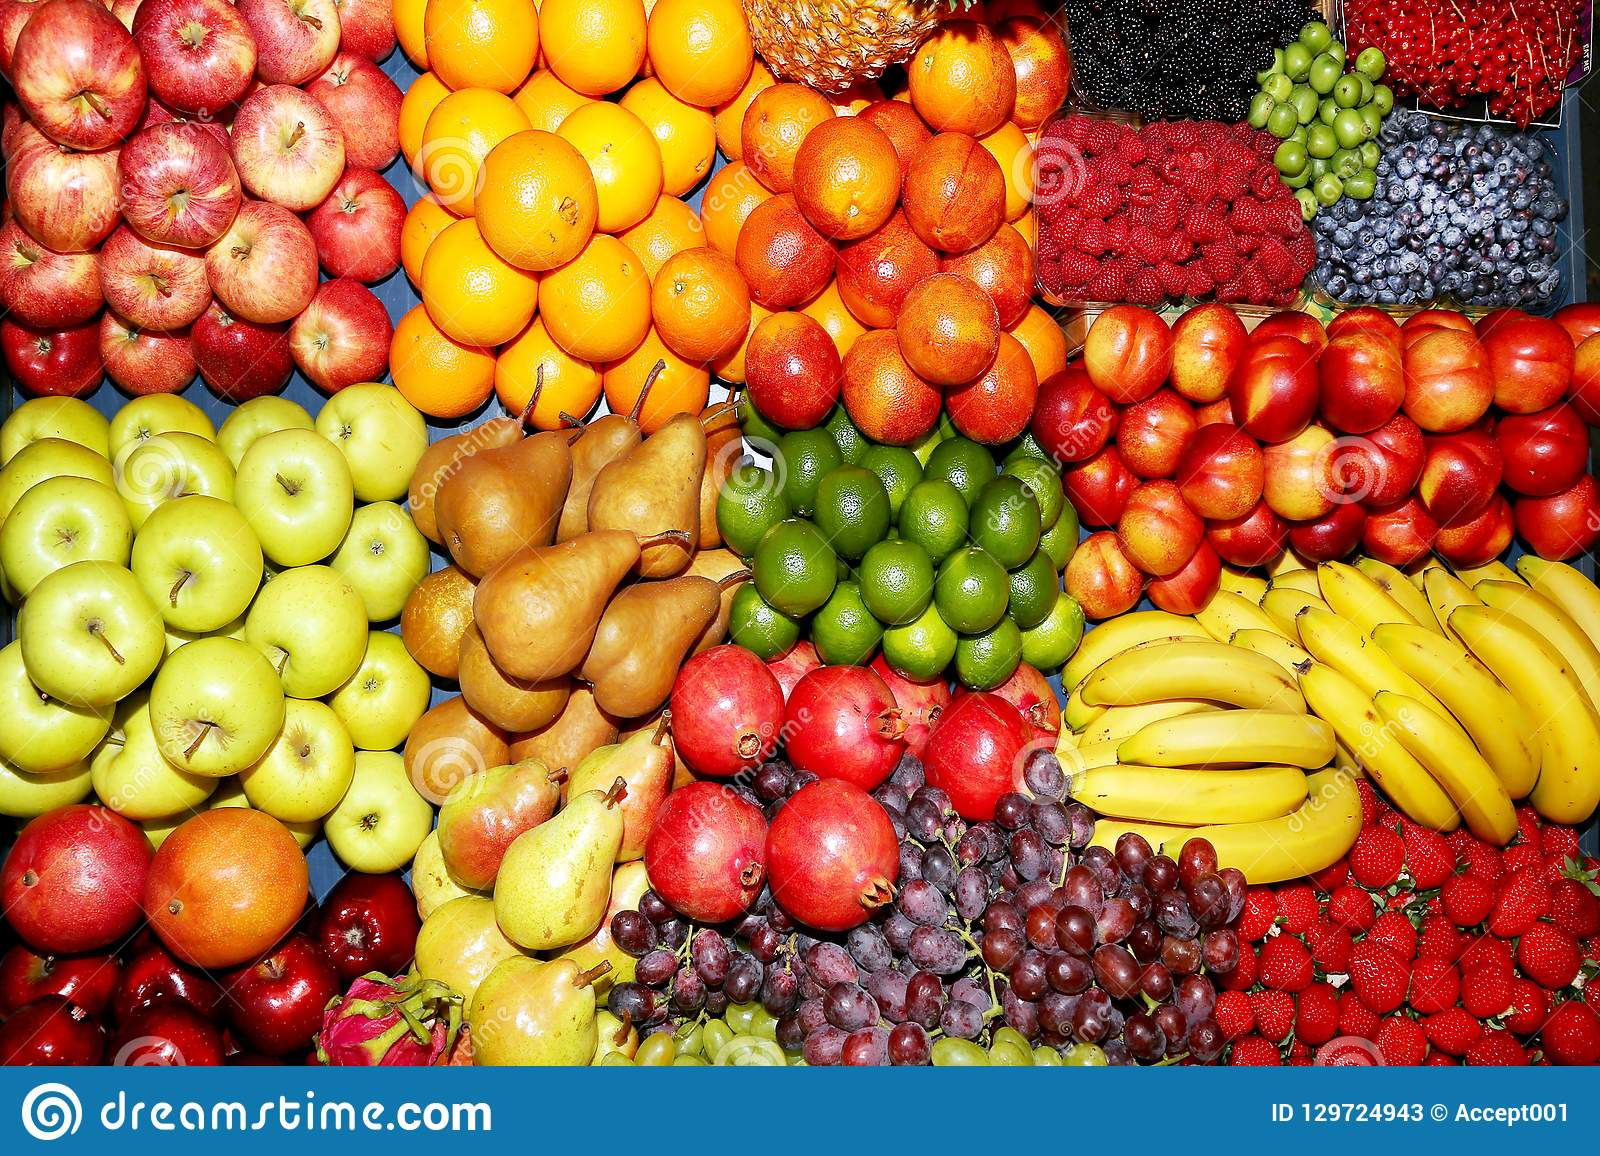 Farmers Market With Various Colorful Fresh Healthy Fruits